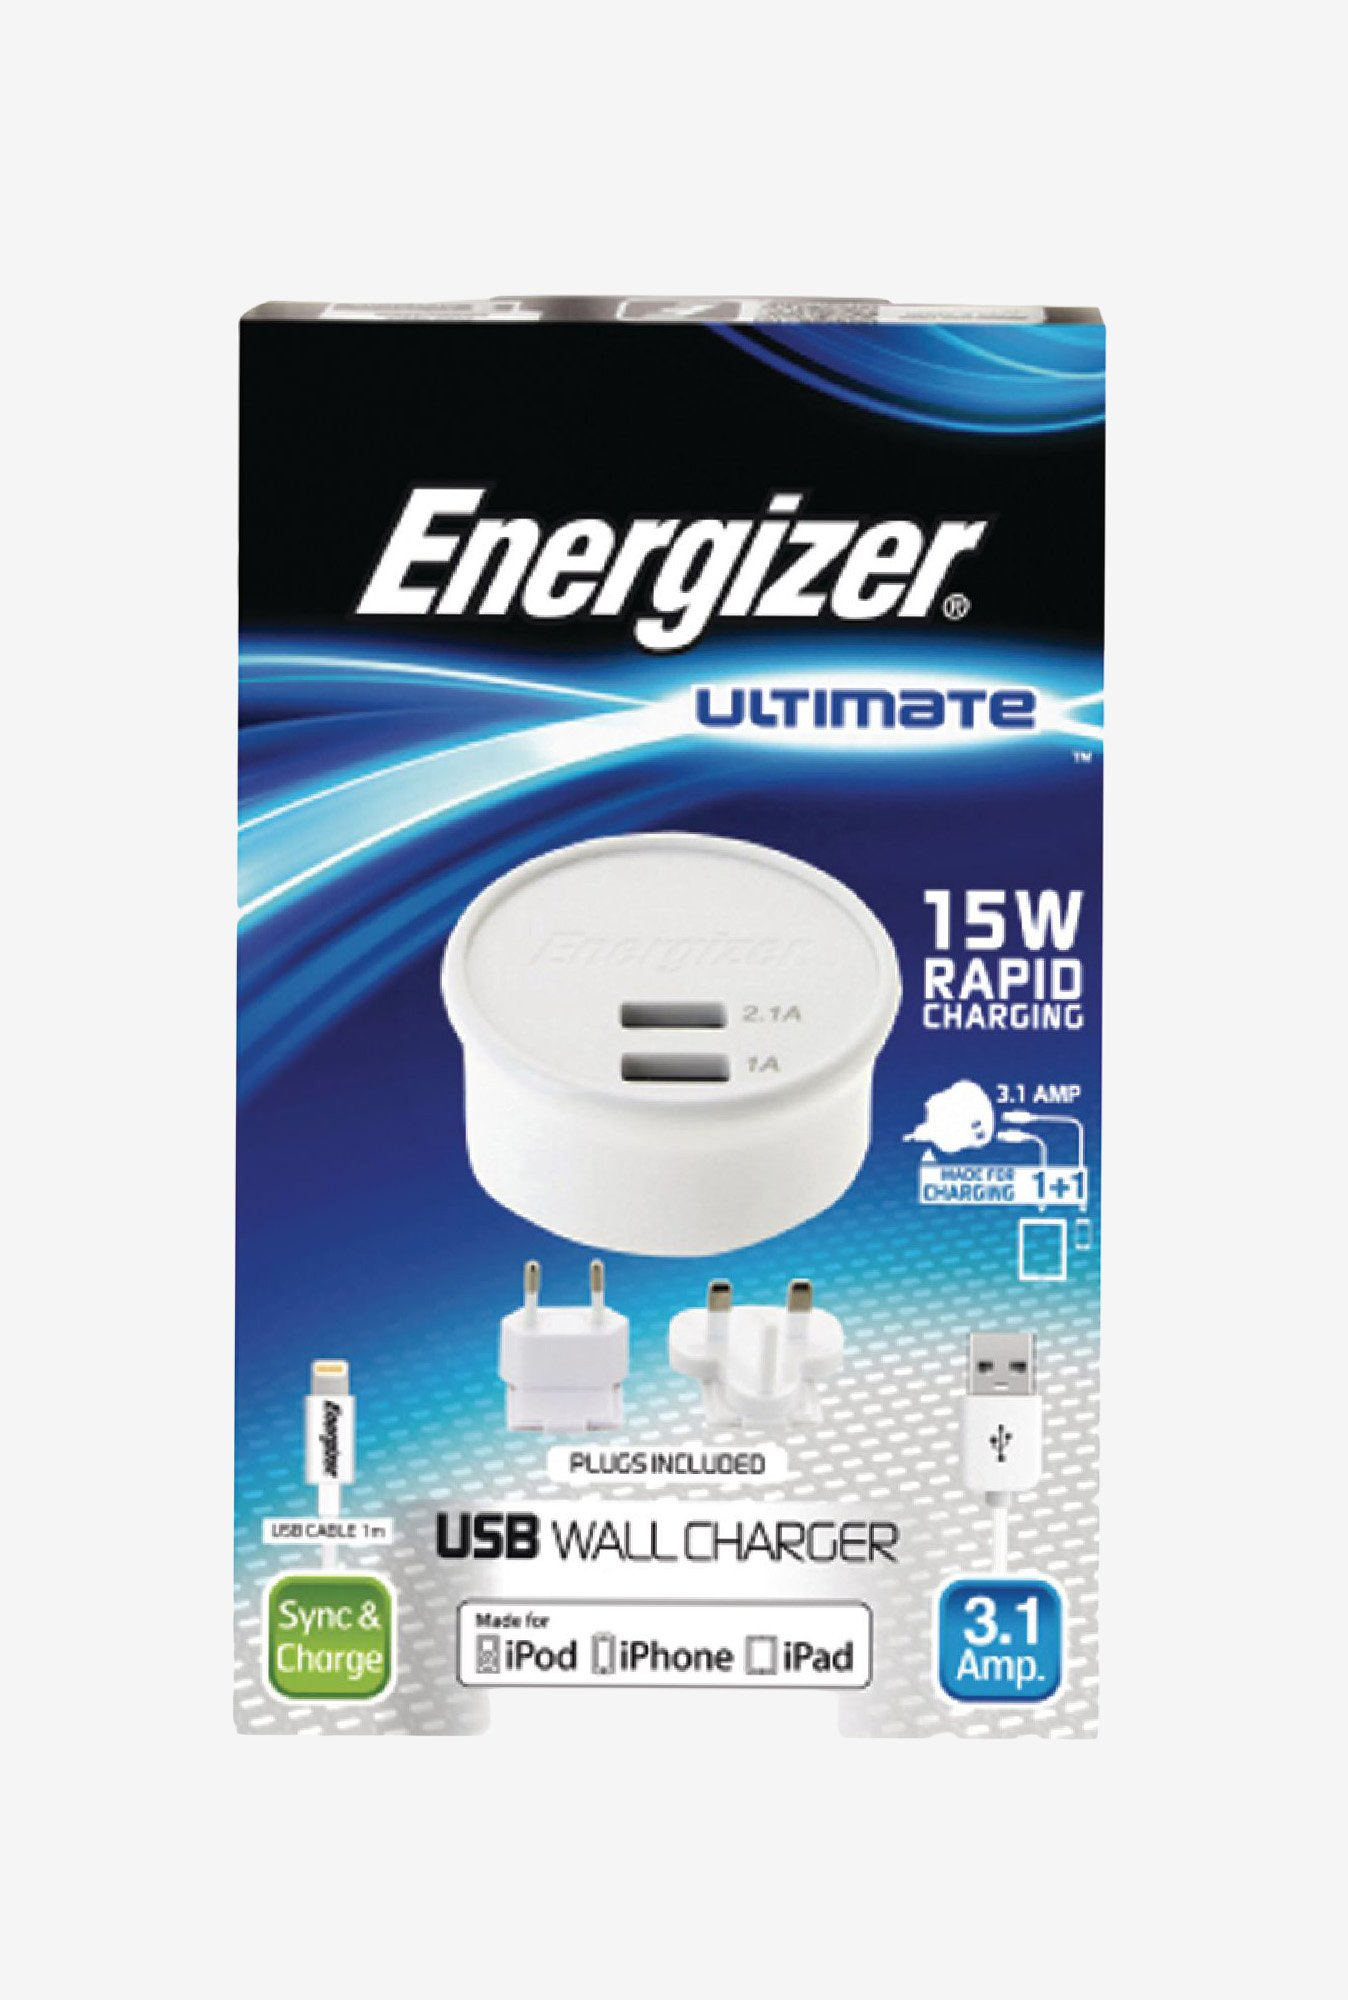 Energizer Ultimate AC2UUNUIP5 iphone5 Wall Charger White